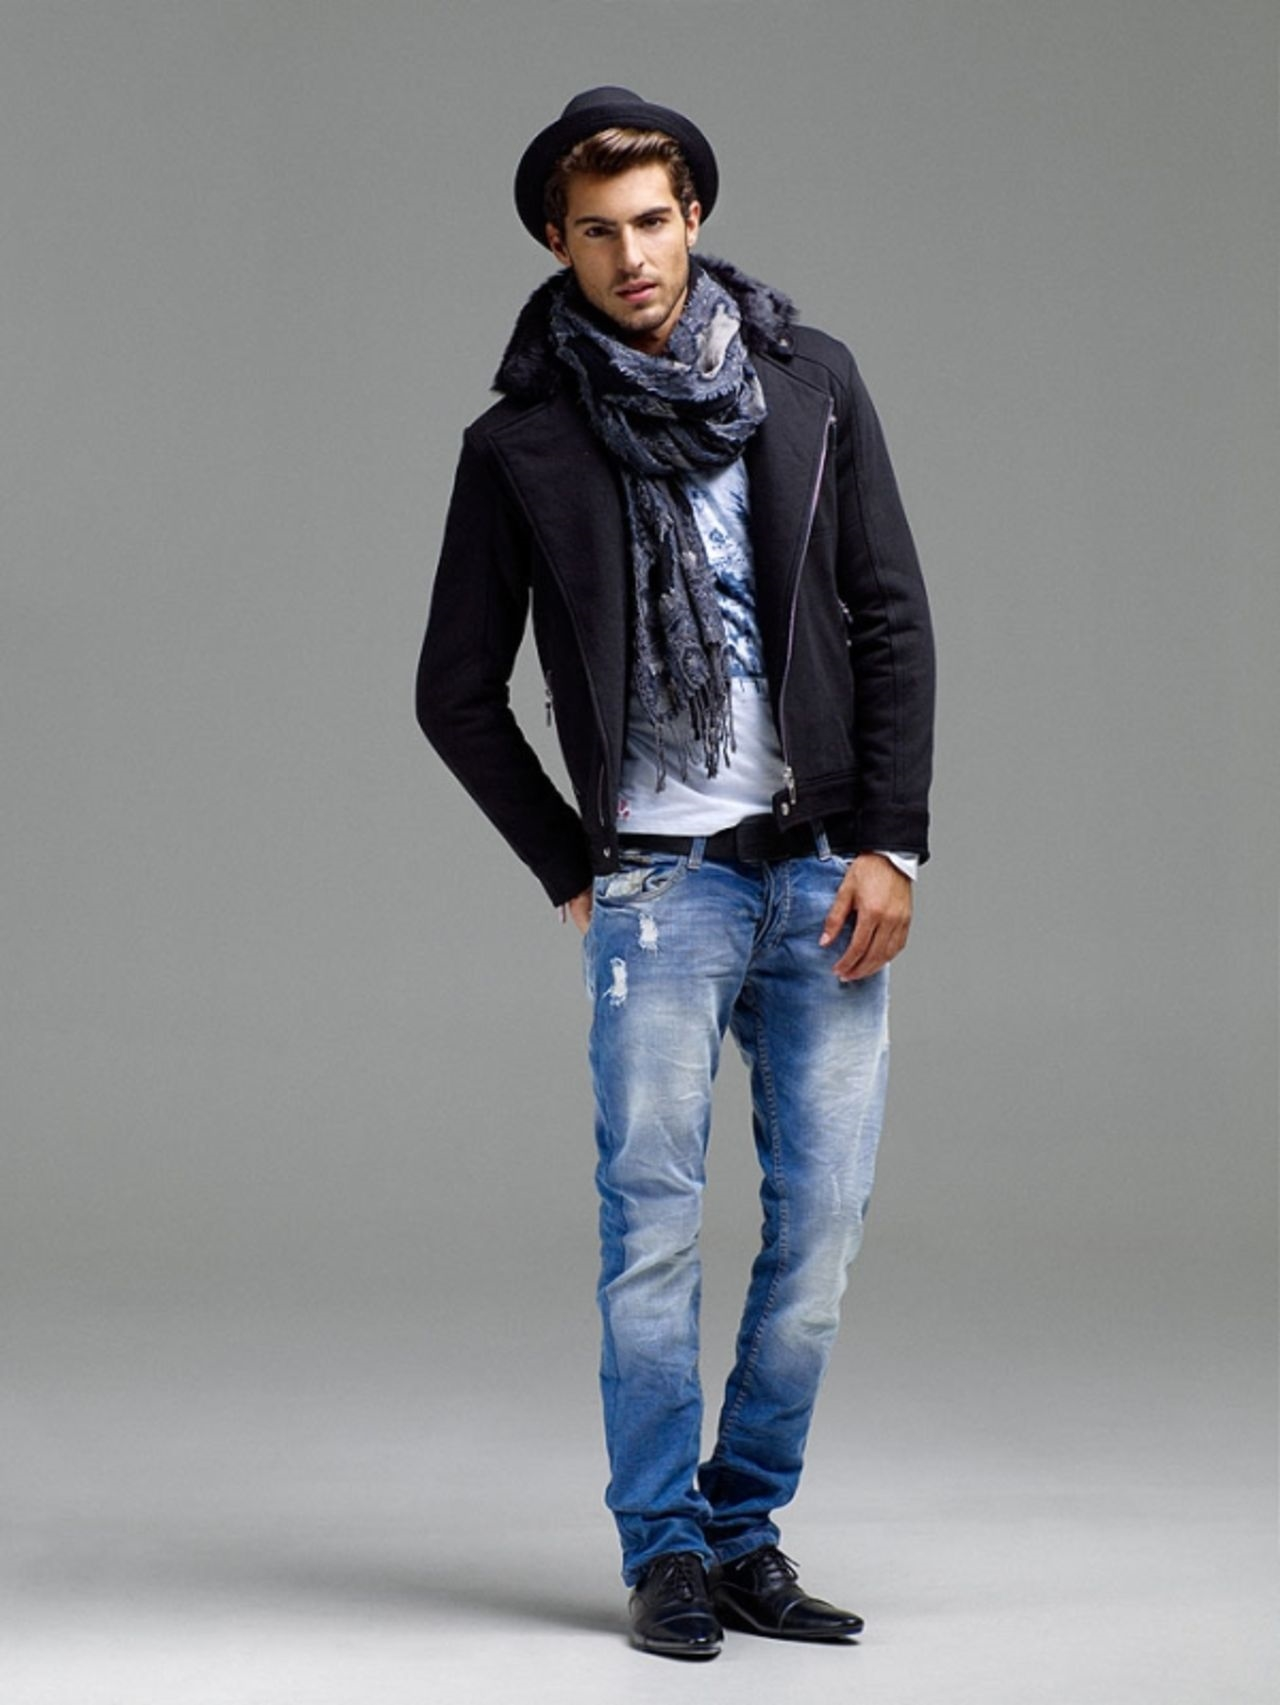 Get the latest in men's fashion and style from the fashion editors at northtercessbudh.cf